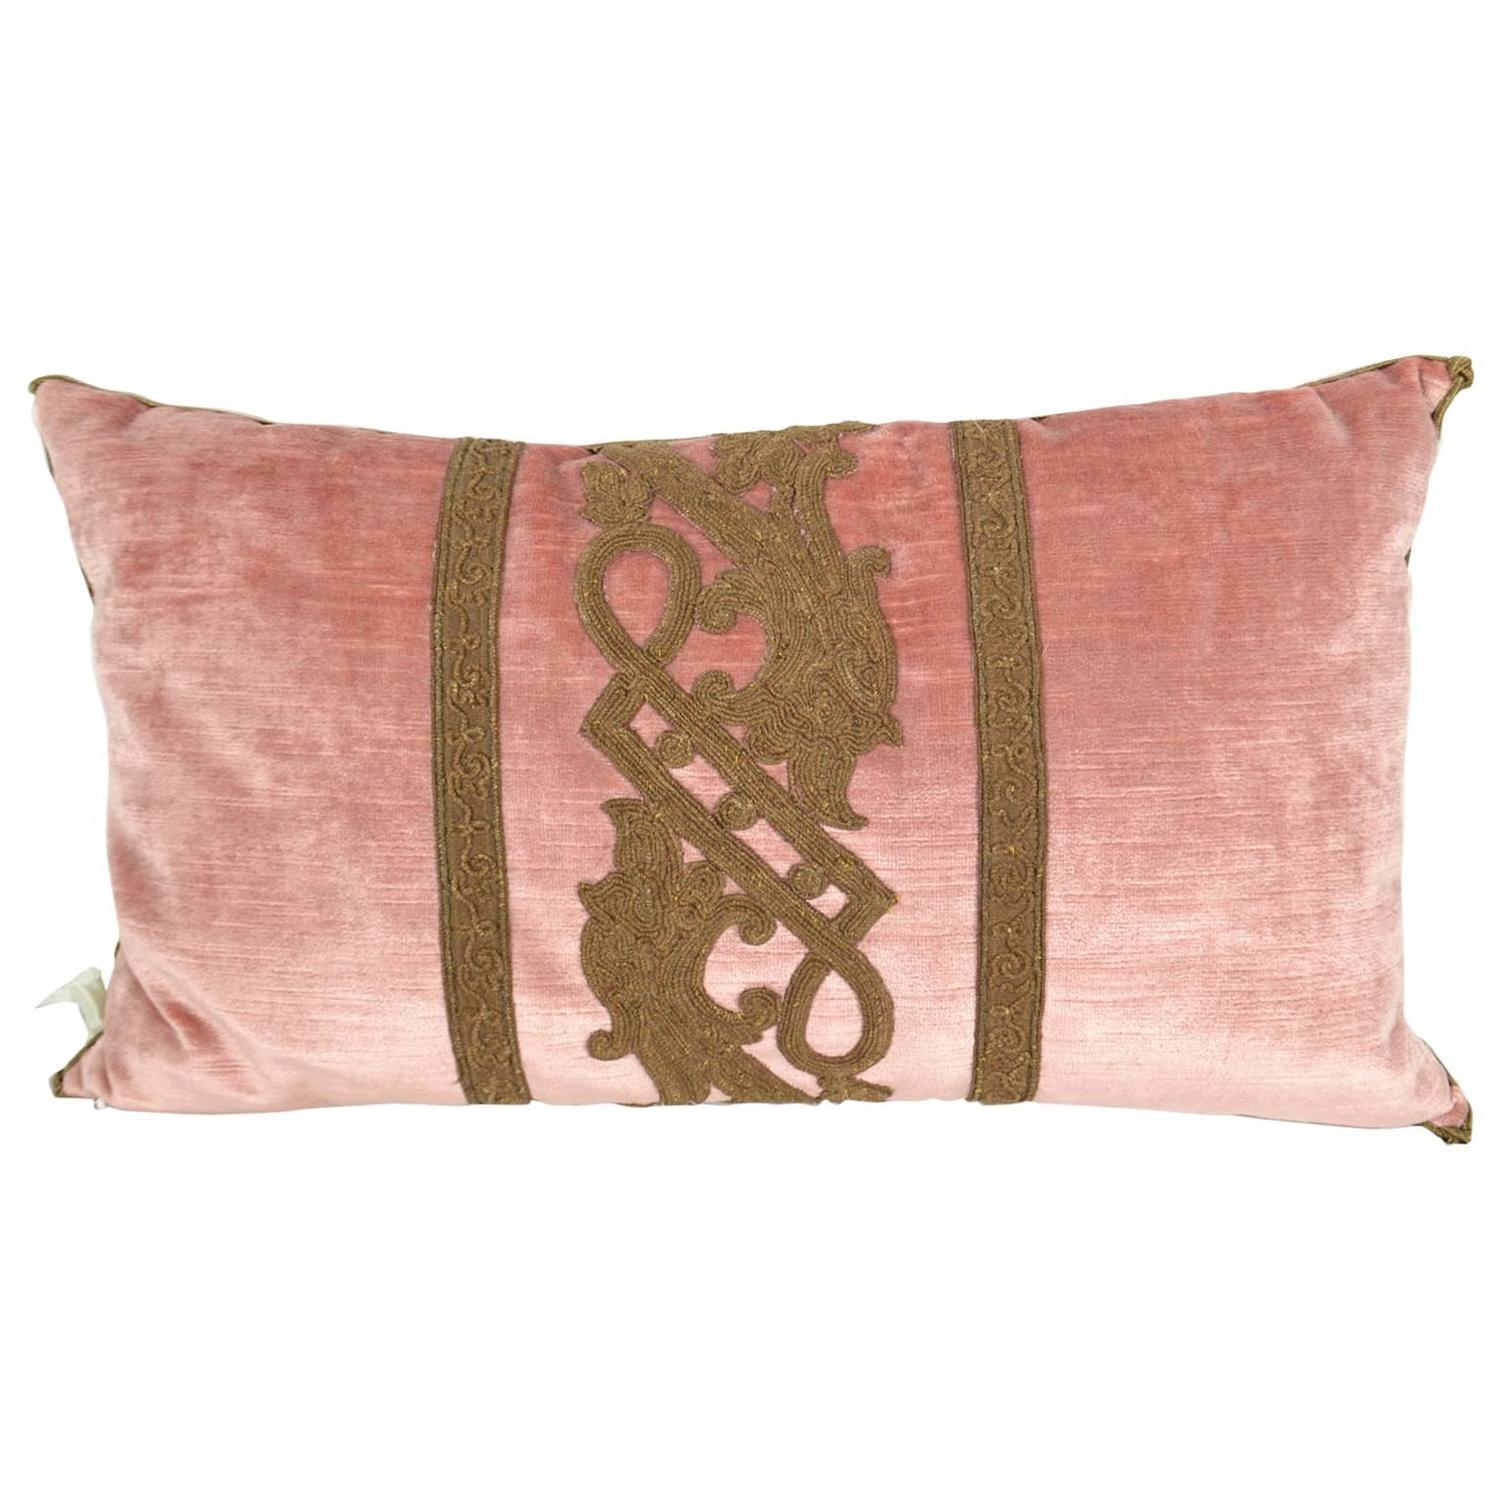 Pillow with Decorative Fabric and Antique Trim at 1stdibs